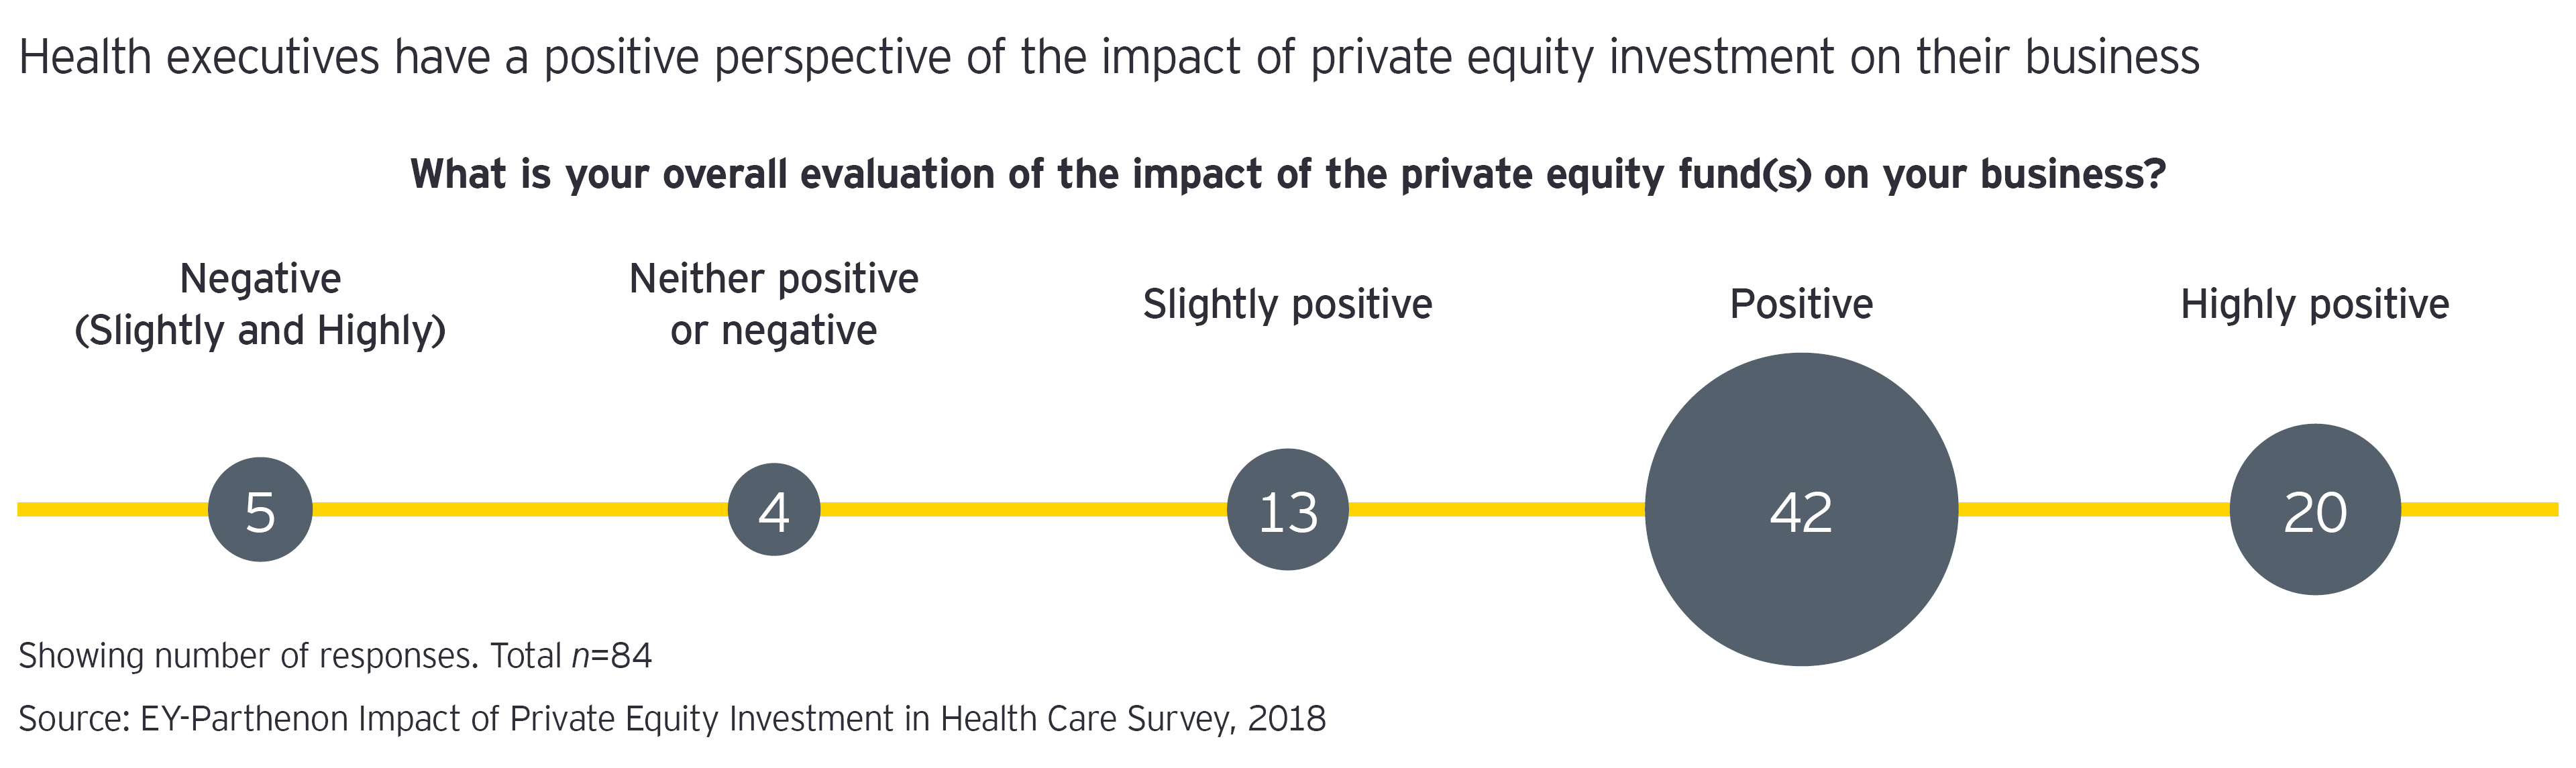 Overall evaluation of the impact of the private equity graph